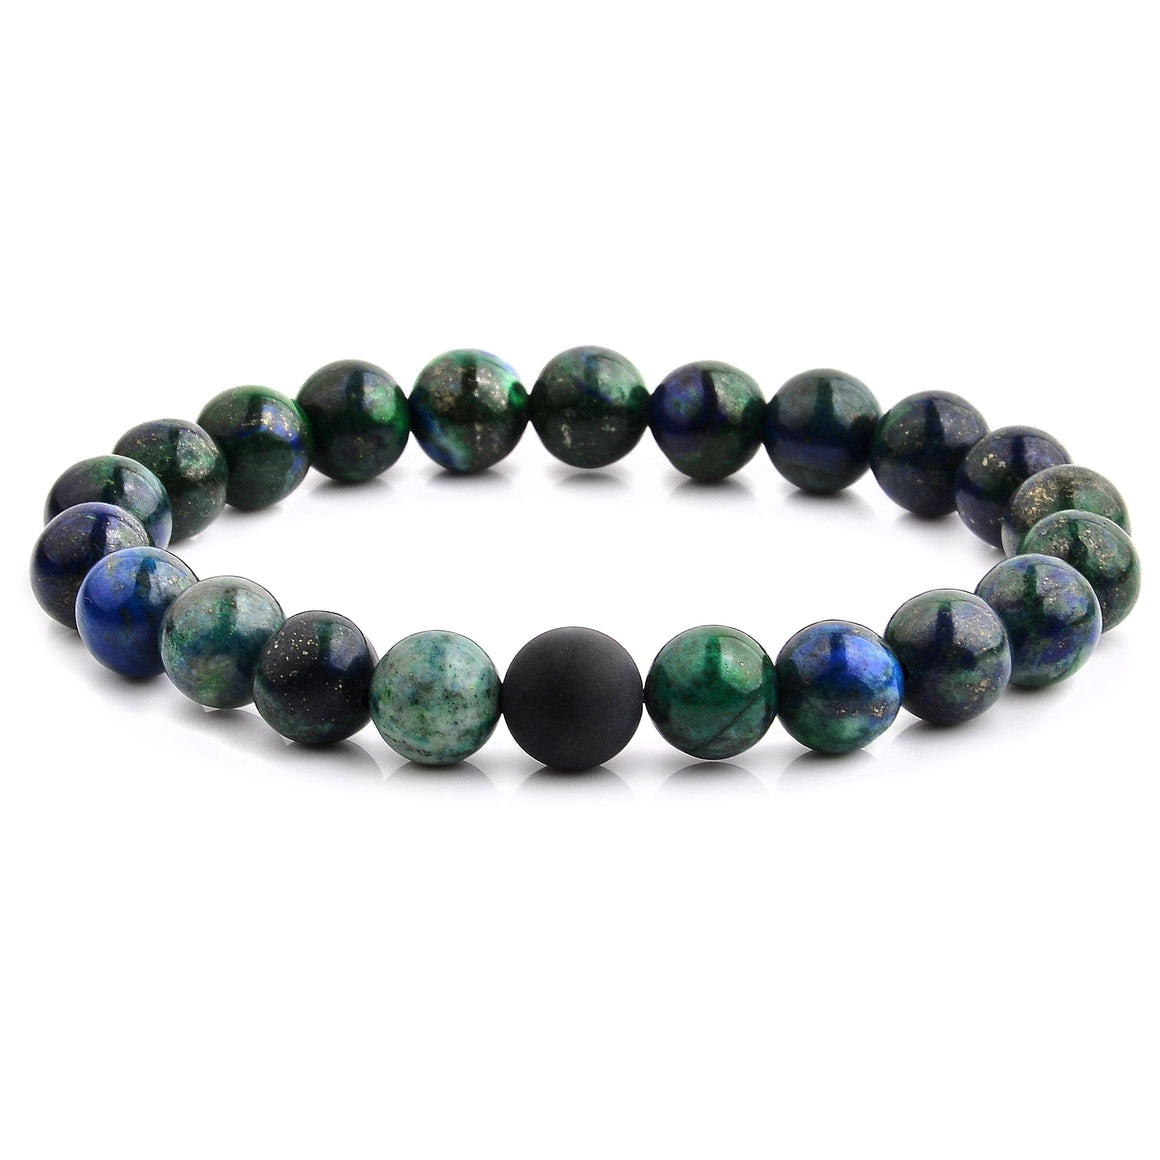 Polished Natural Stone Bead Stretch Bracelet in 12 Colors